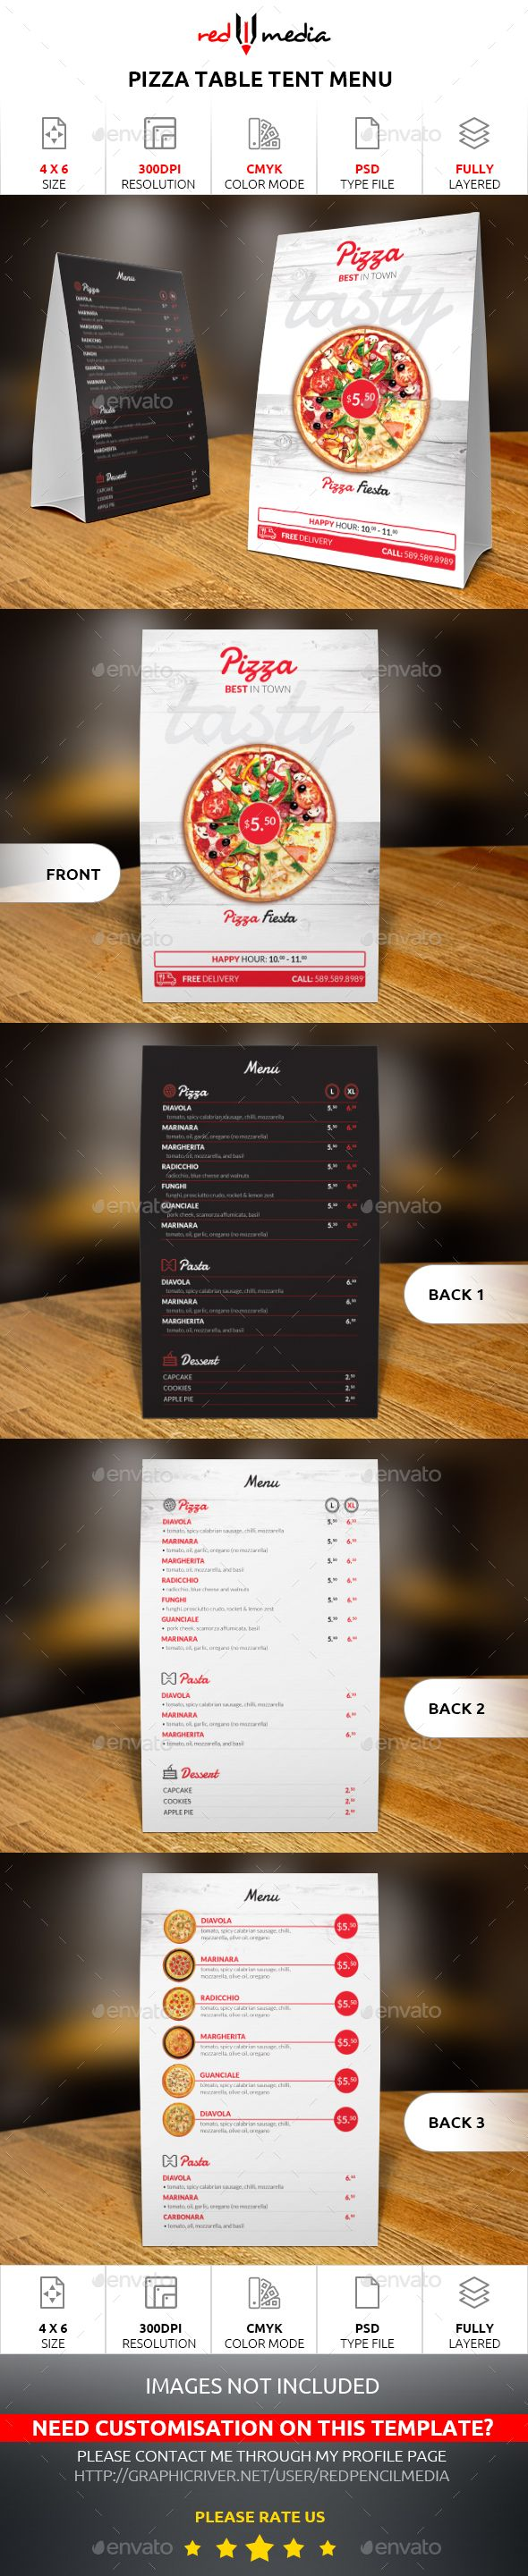 Pizza Table Tent Menu Design Template  - Food Menus Print Design Templates PSD. Download here: https://graphicriver.net/item/pizza-table-tent-menu/19330387?ref=yinkira